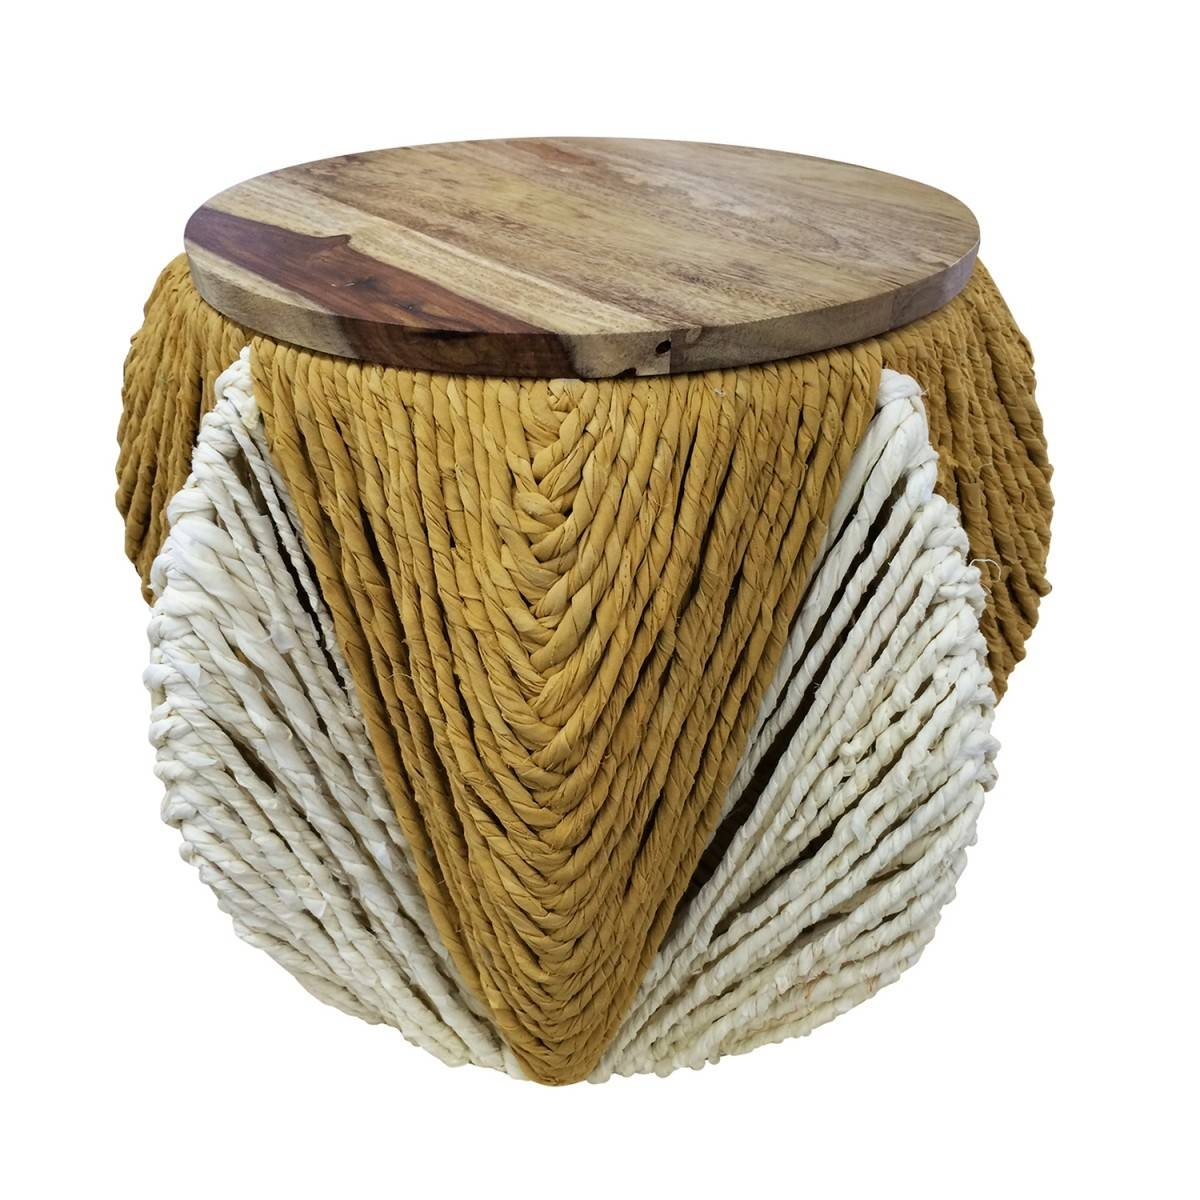 Selamat Justina Blakeney Lala Round Stool With Storage with regard to Jaipur Sheesham Coffee Tables (Image 24 of 30)